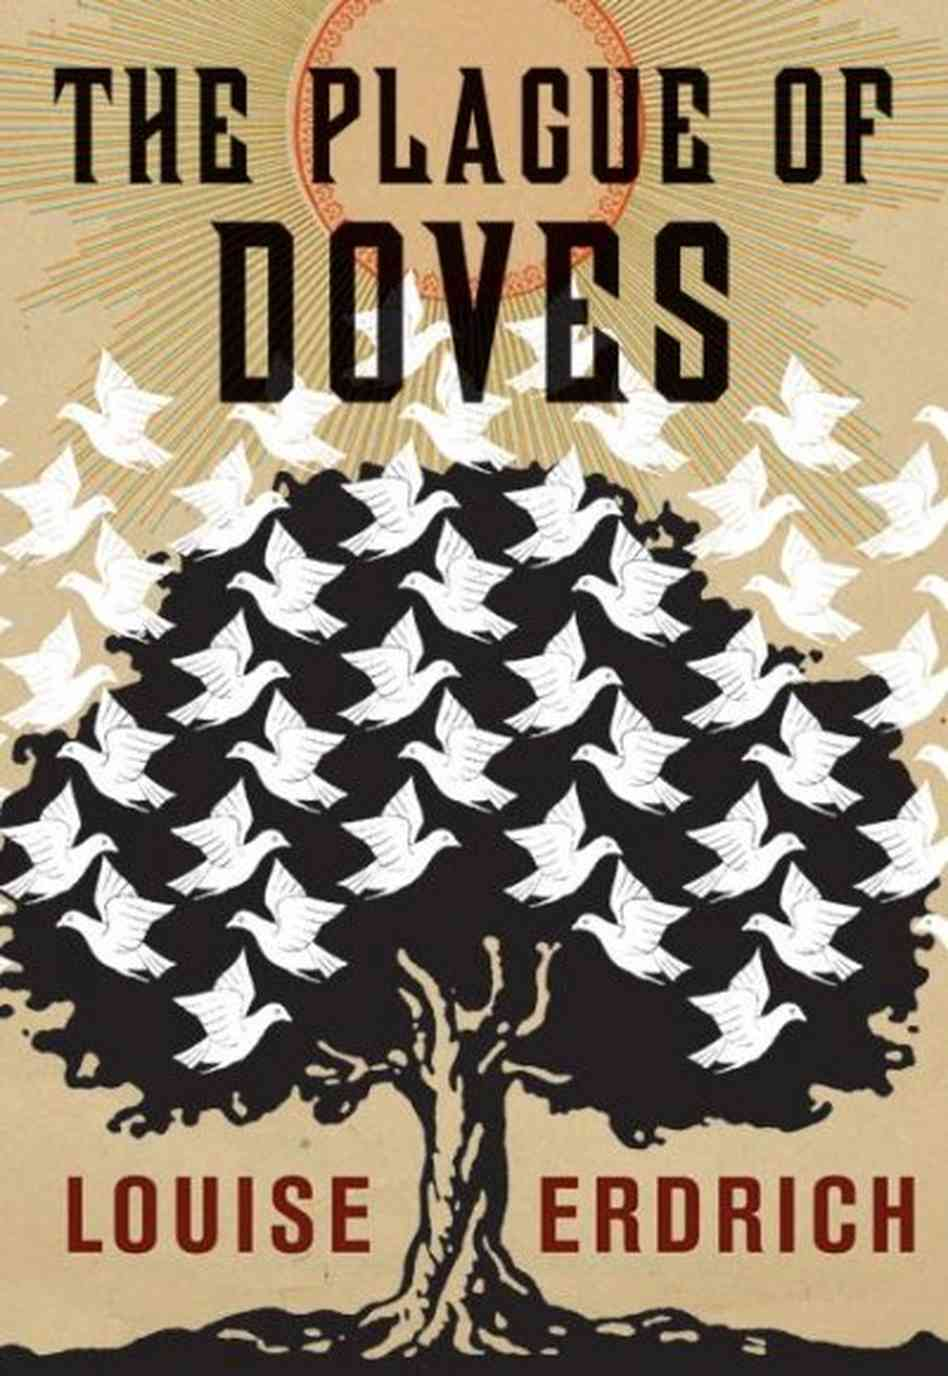 Book cover for Louise Erdrich's The Plague of Doves in the South Manchester, Chorlton, and Didsbury book group